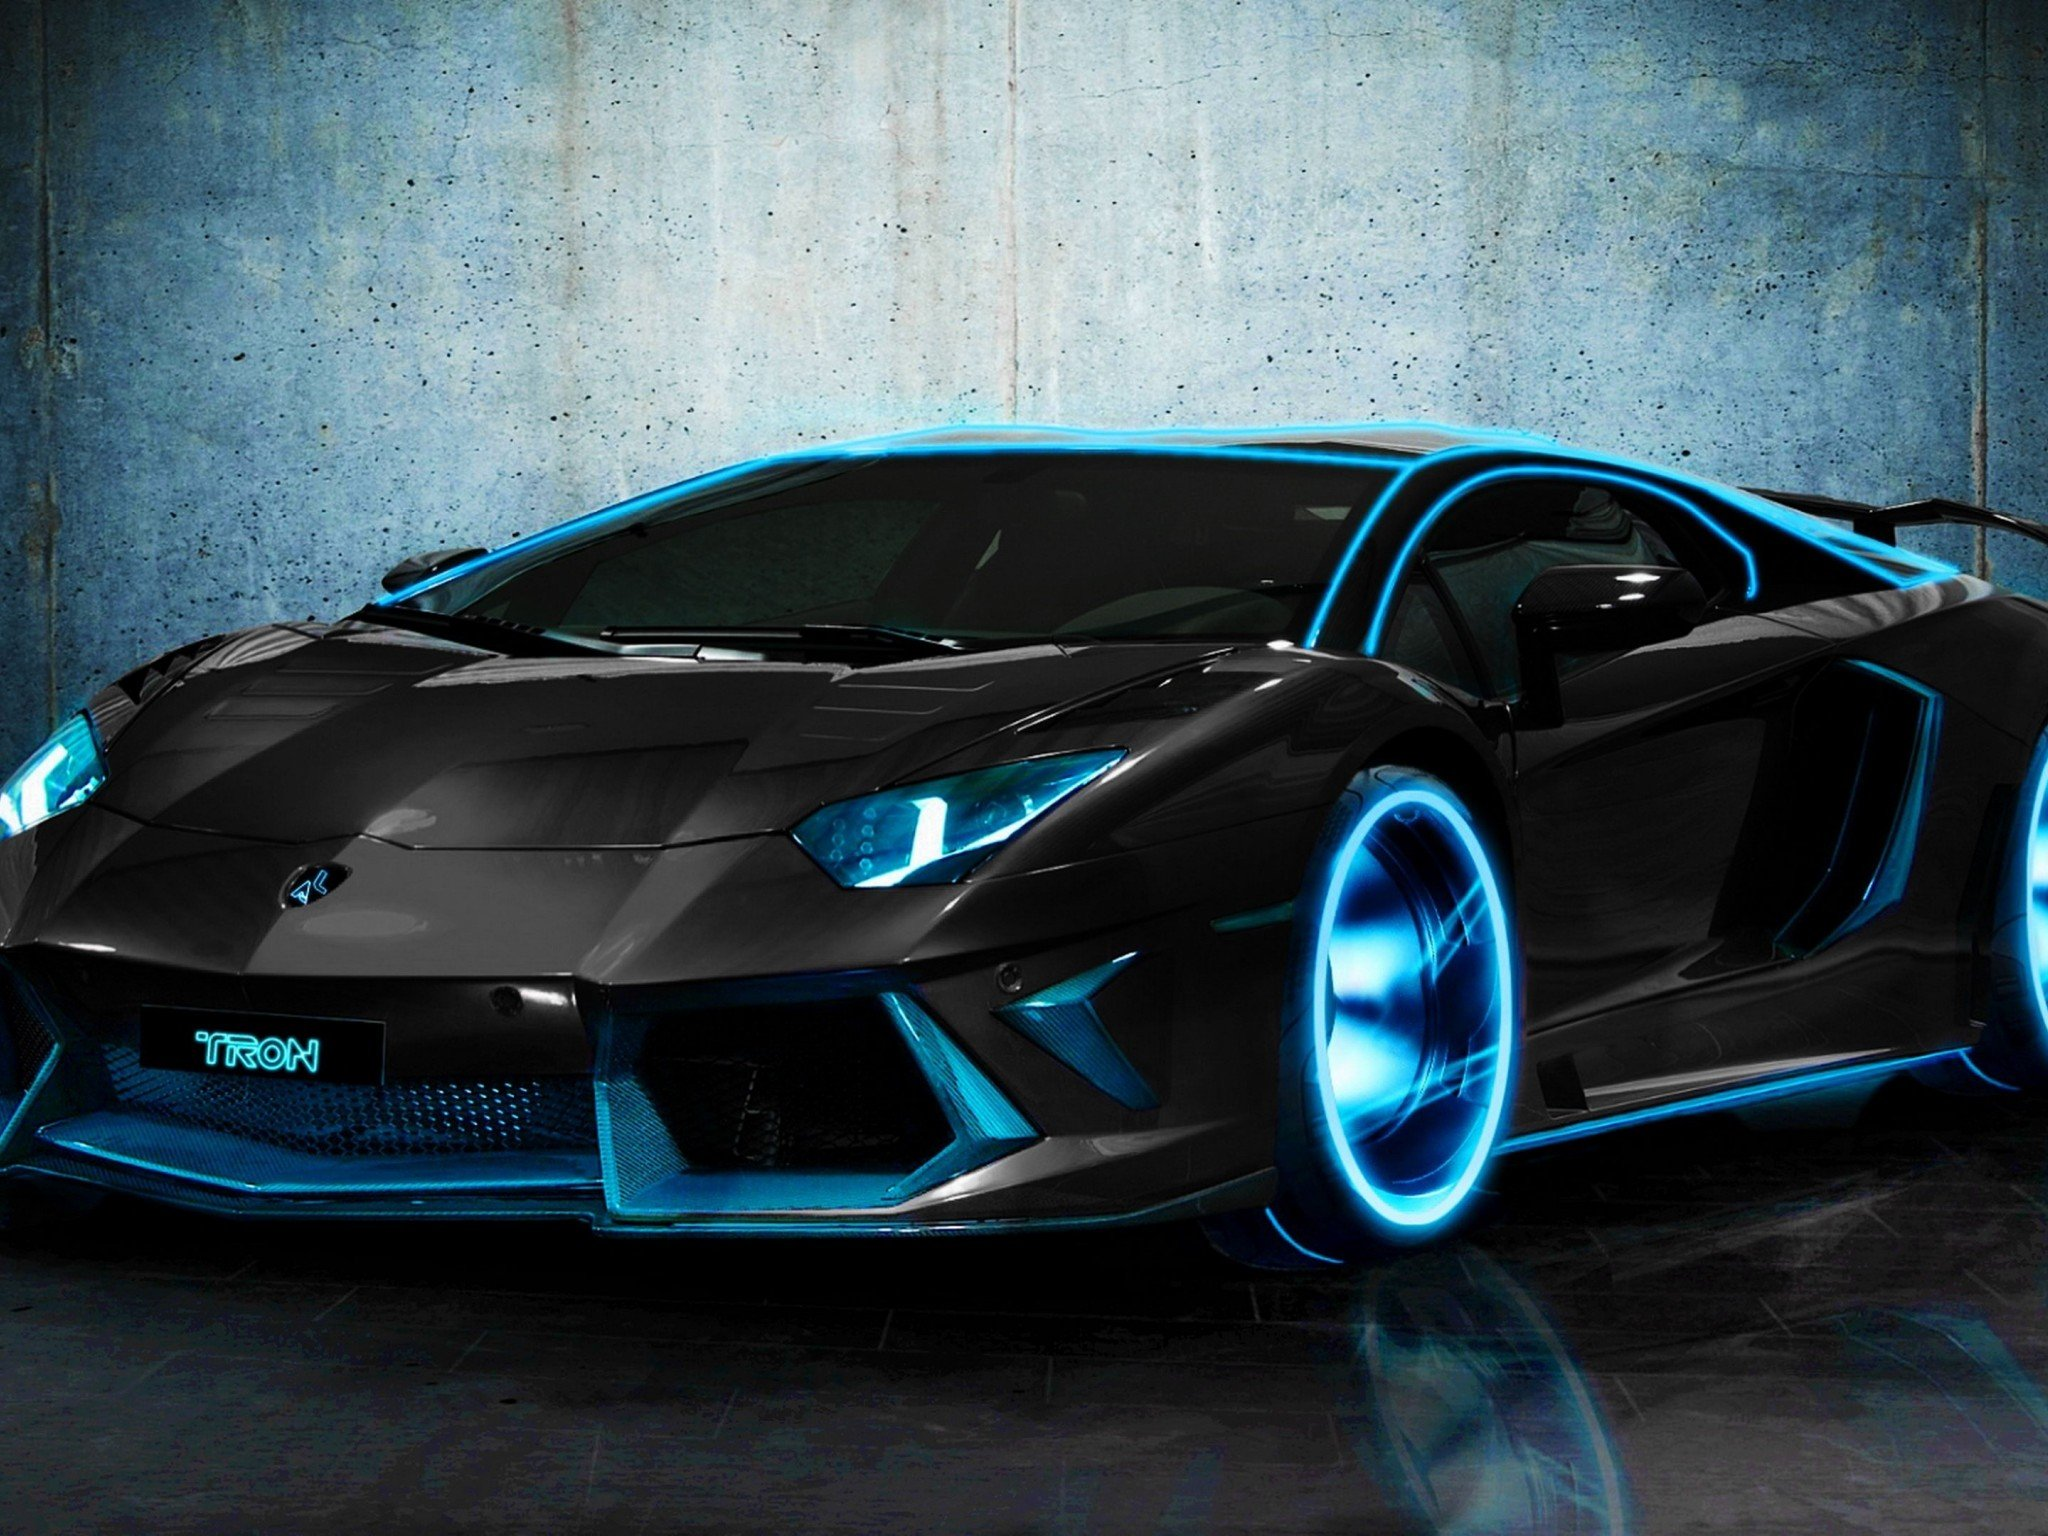 Lamborghini Aventador Ultra HD wallpaper UHD WallpapersNet 2048x1536